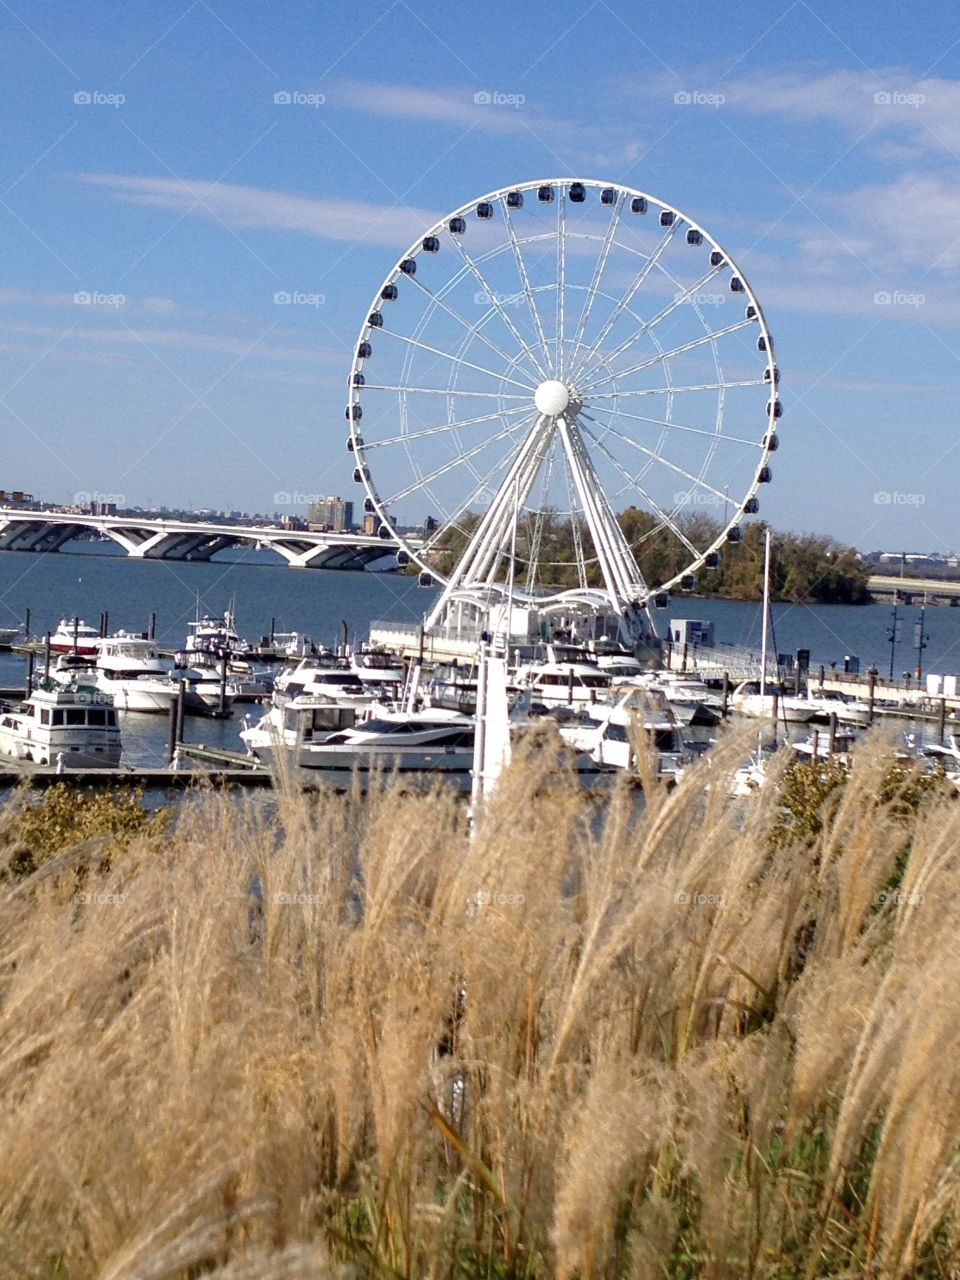 National harbor Ferris wheel . This was taken on the Potomac River at the national harbor in Maryland.  The view from the top includes Washington DC